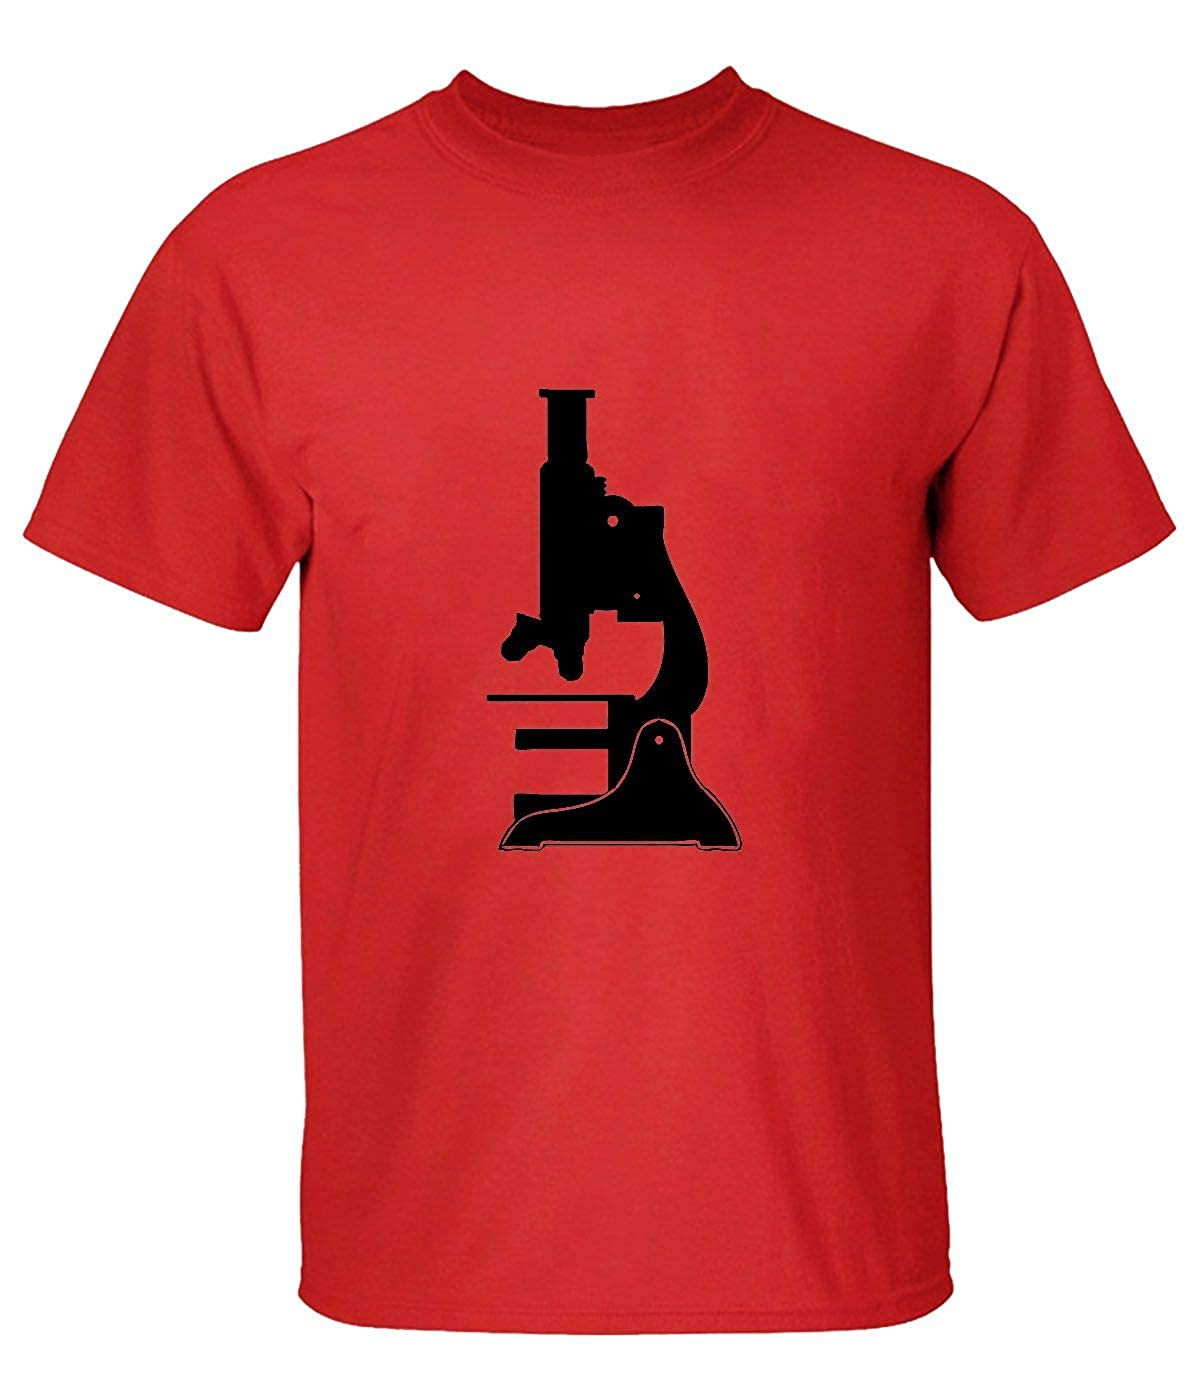 tianlihong-90604 Scientists Microscope T Shirt for Mens